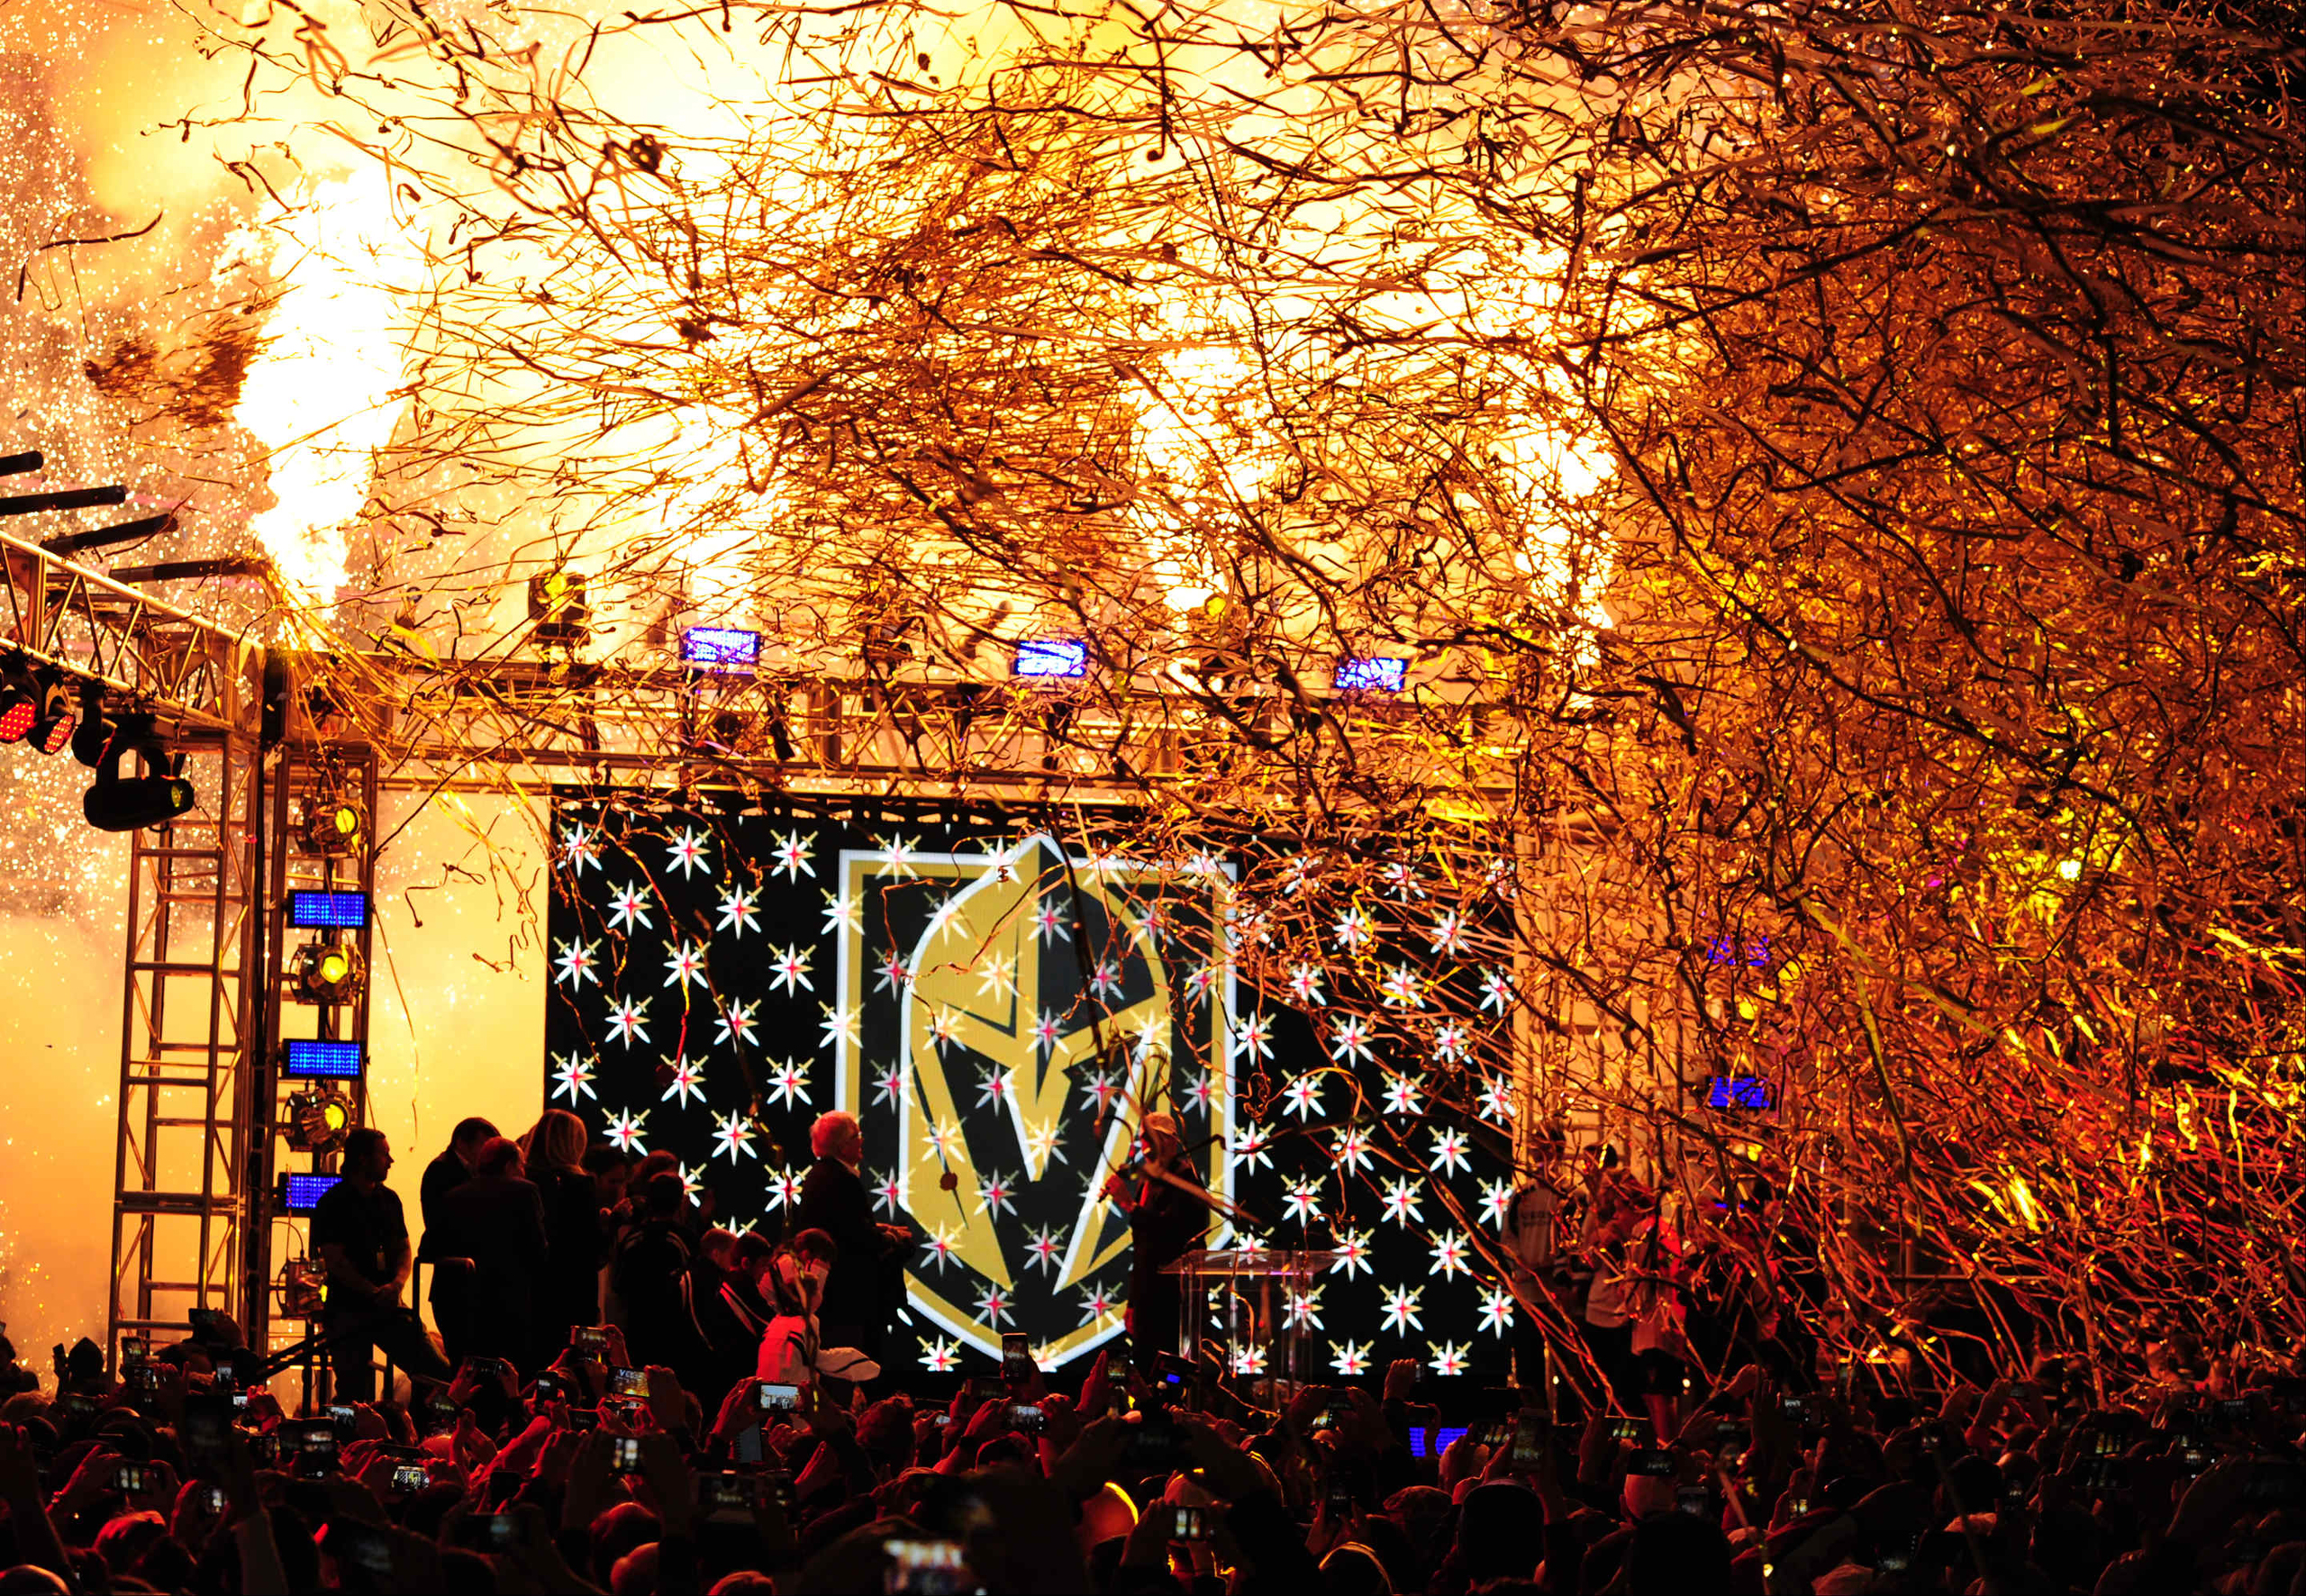 Pyrotechnics explode as the Vegas Golden Knights name and logo is revealed during the Las Vegas NHL team name Unveiling ceremony at T-Mobile Arena in Las Vegas, NV on Nov. 22, 2016.